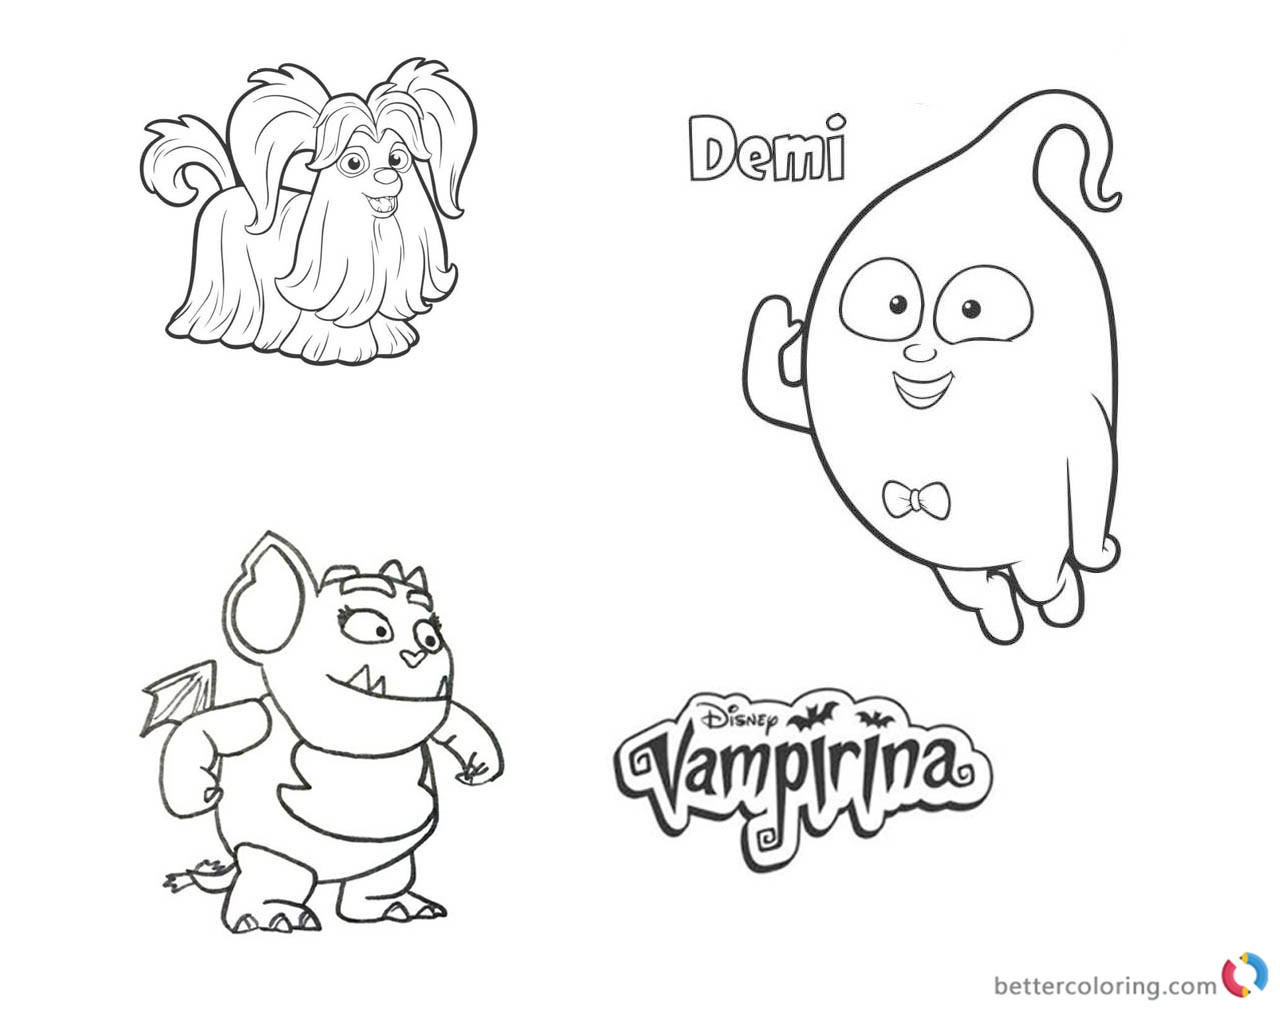 Vampirina Coloring Pages Wolfie Demi And Gregoria Free Printable Coloring Pages